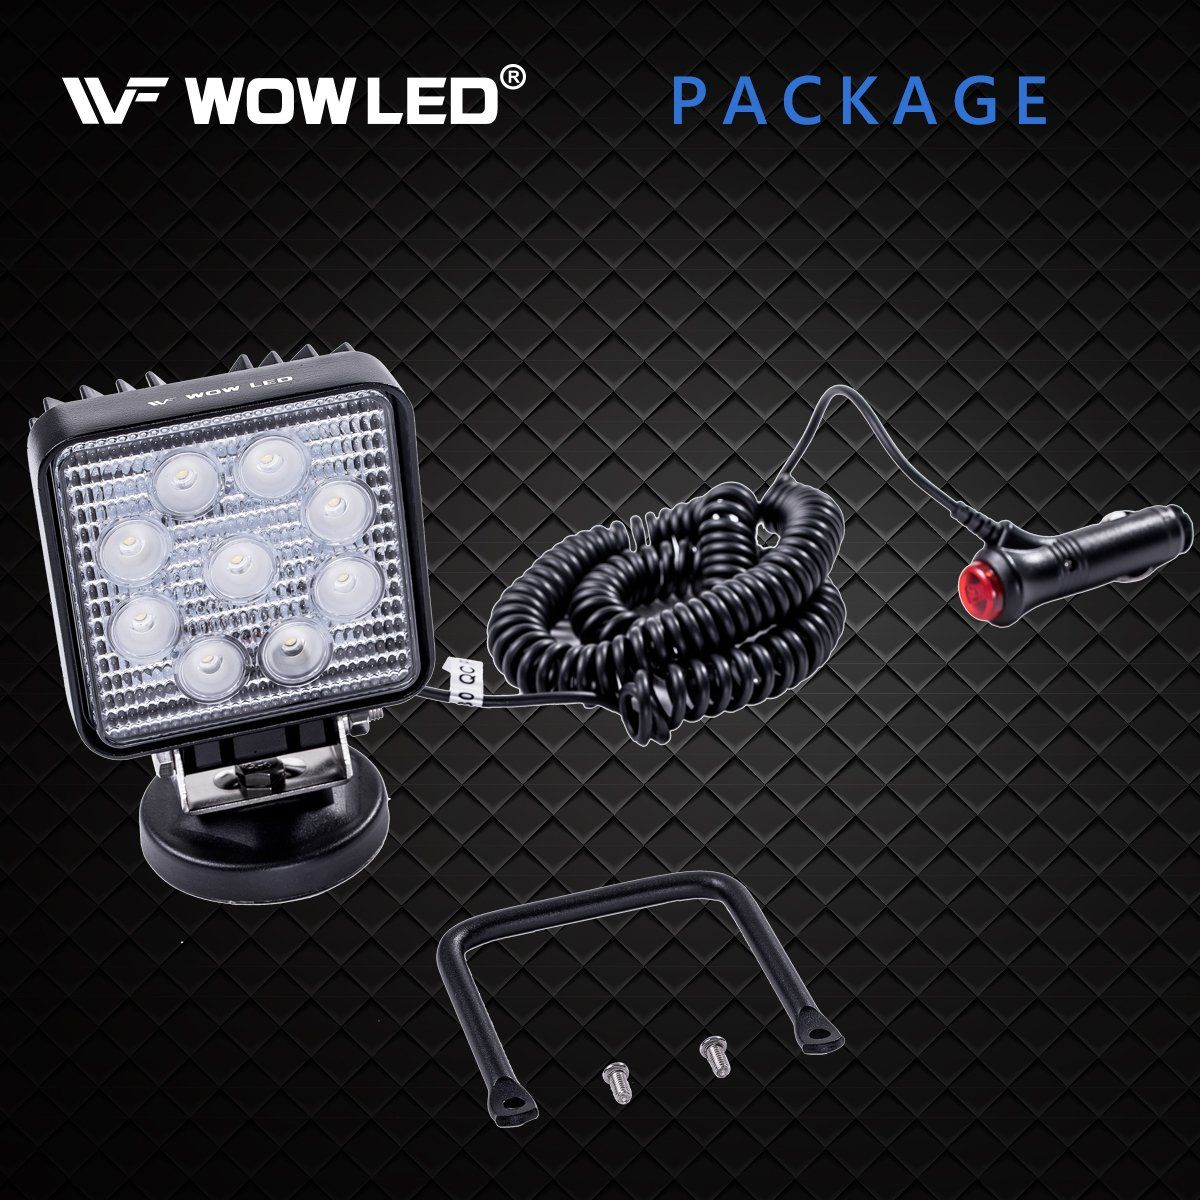 Boat LED Work Light Magnet 27W Portable Spot Flood Beam Lamp for Truck Tractor Trailer WOWLED LED Light Bar with Magnetic Base Off-Road Engineering Vehicle Maintenance Travel Car Camping